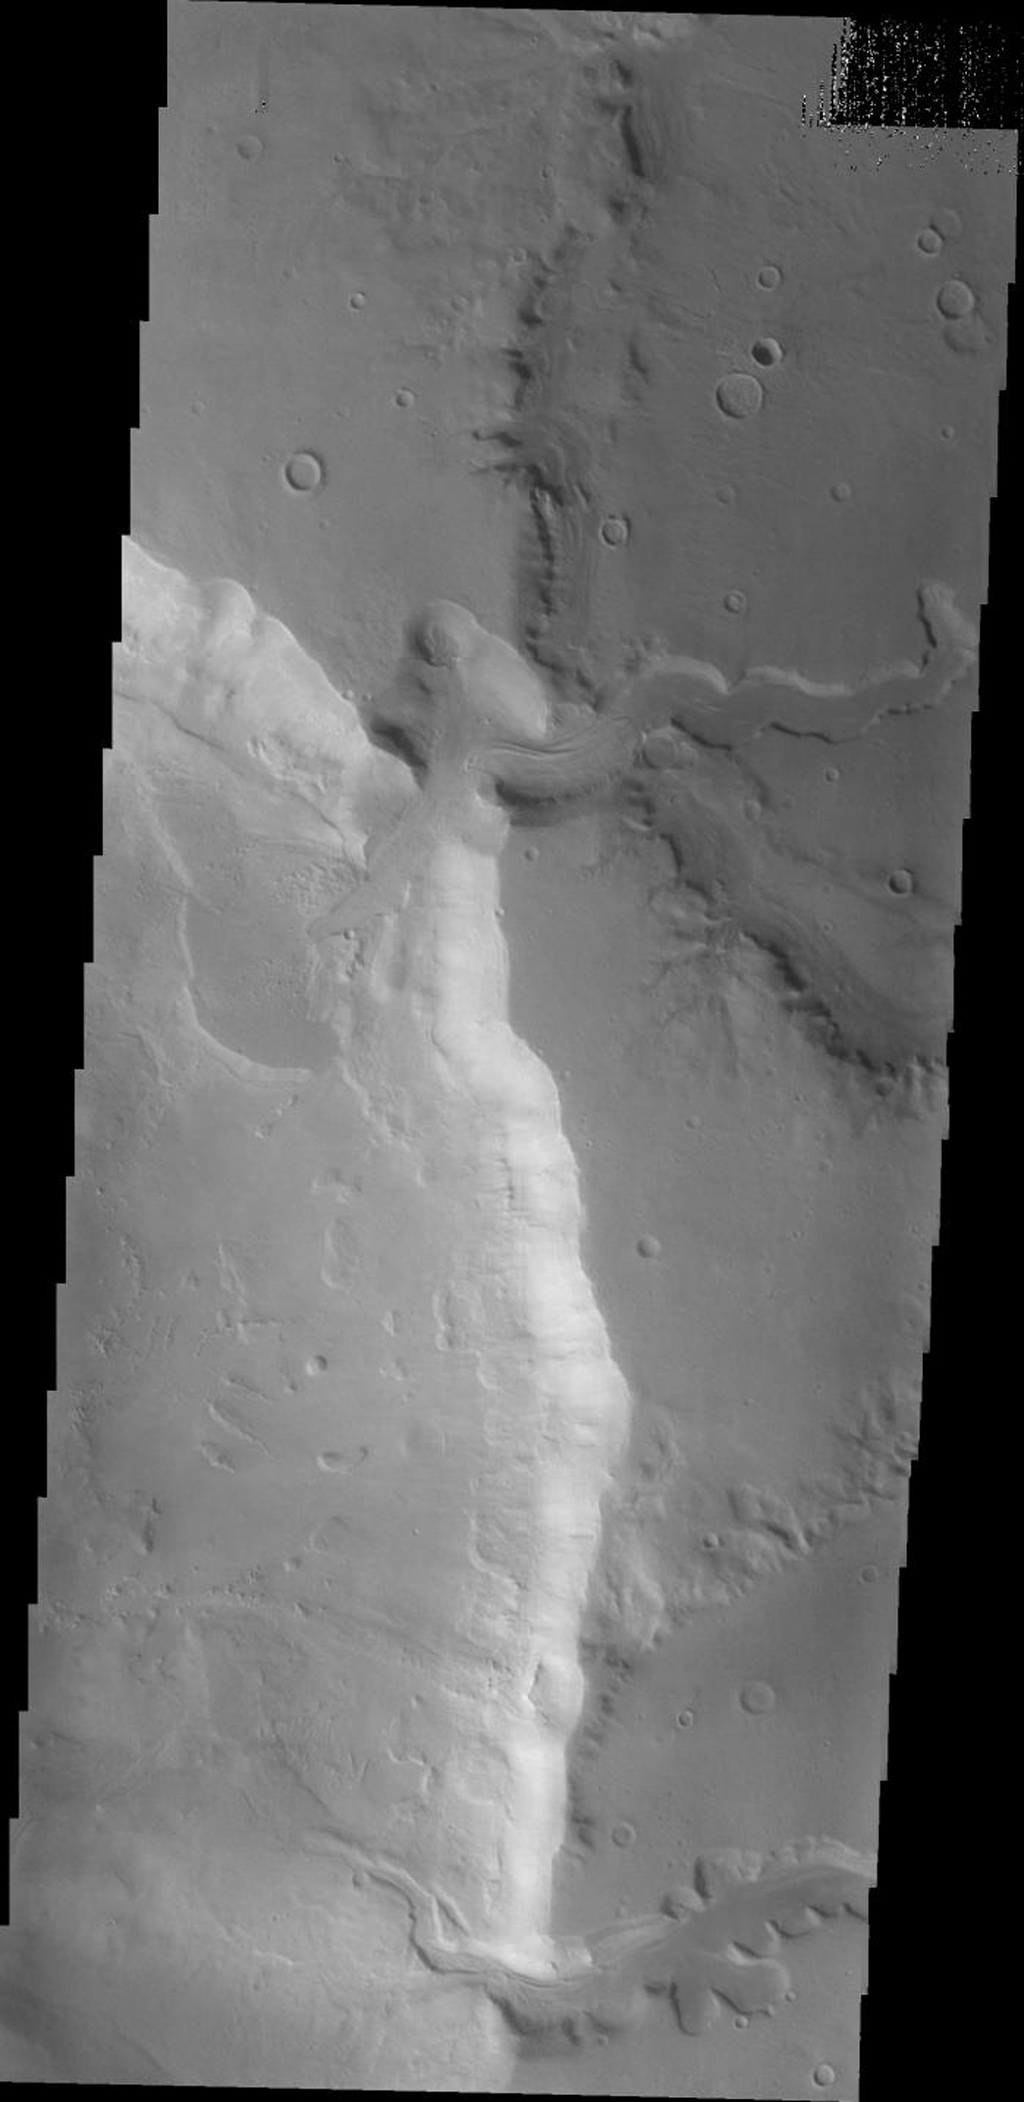 This 2001 Mars Odyssey image shows two channels entering an unnamed crater in Arabia Terra on Mars. The northern channel has formed a delta deposit on the floor of the crater.